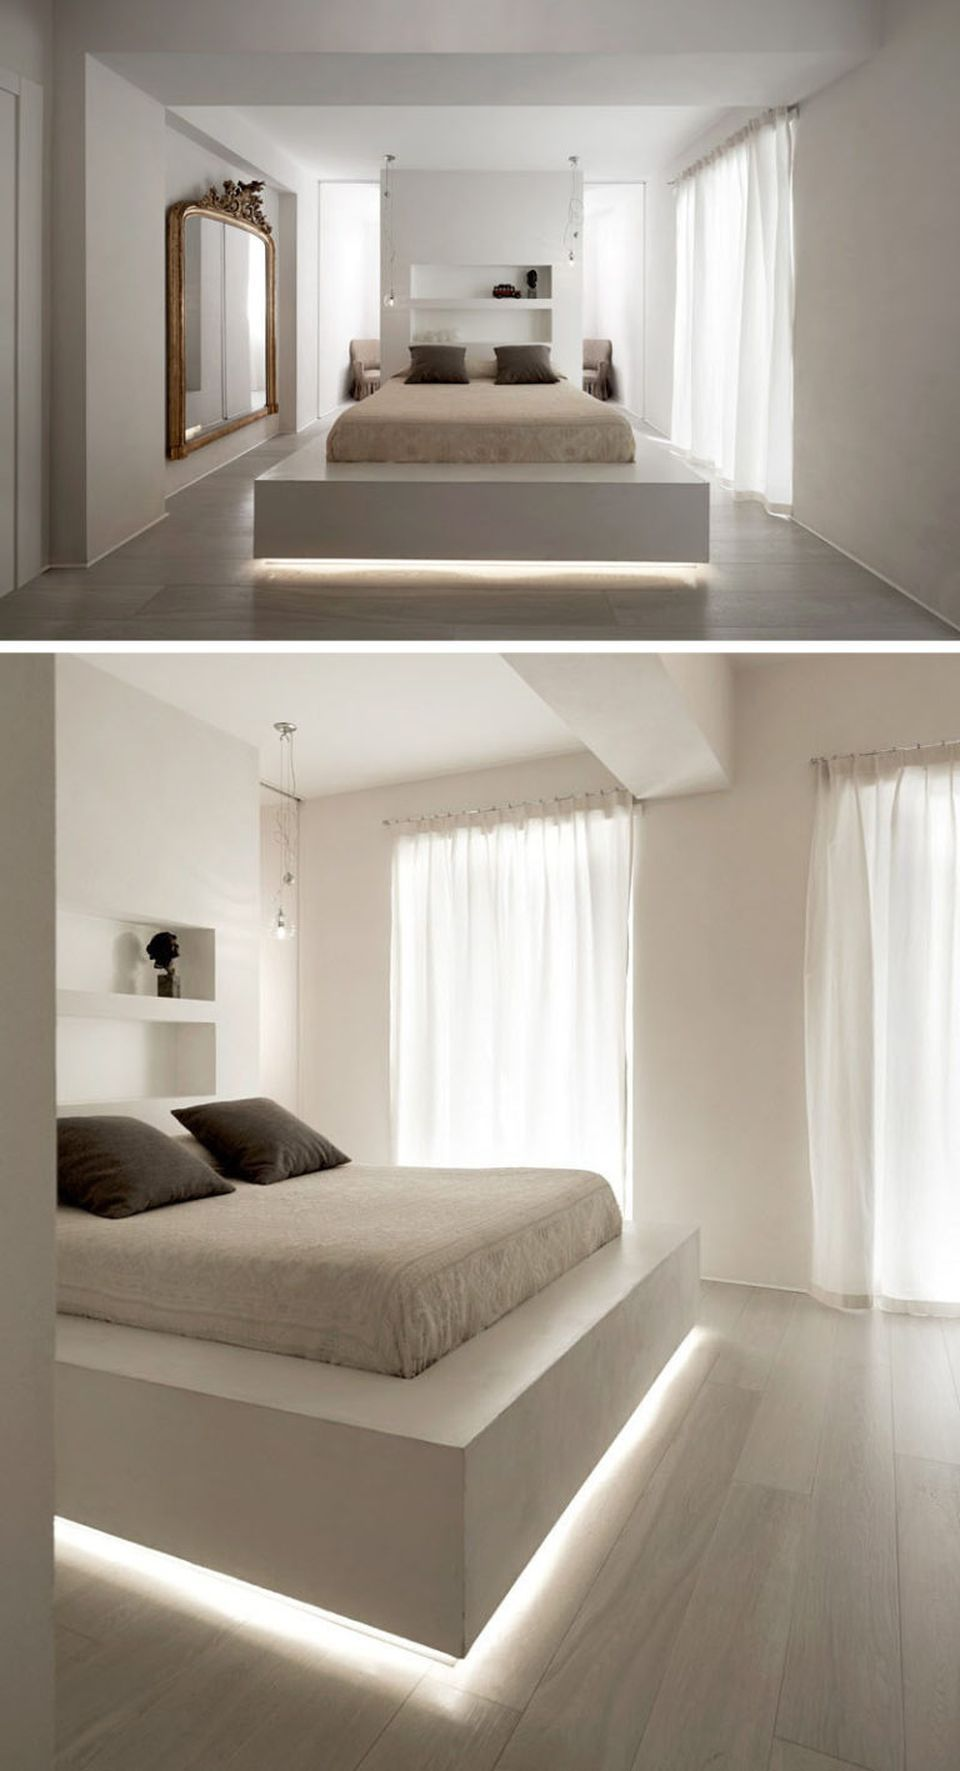 Amazing Modern Floating Bed Design with Under Light Bed